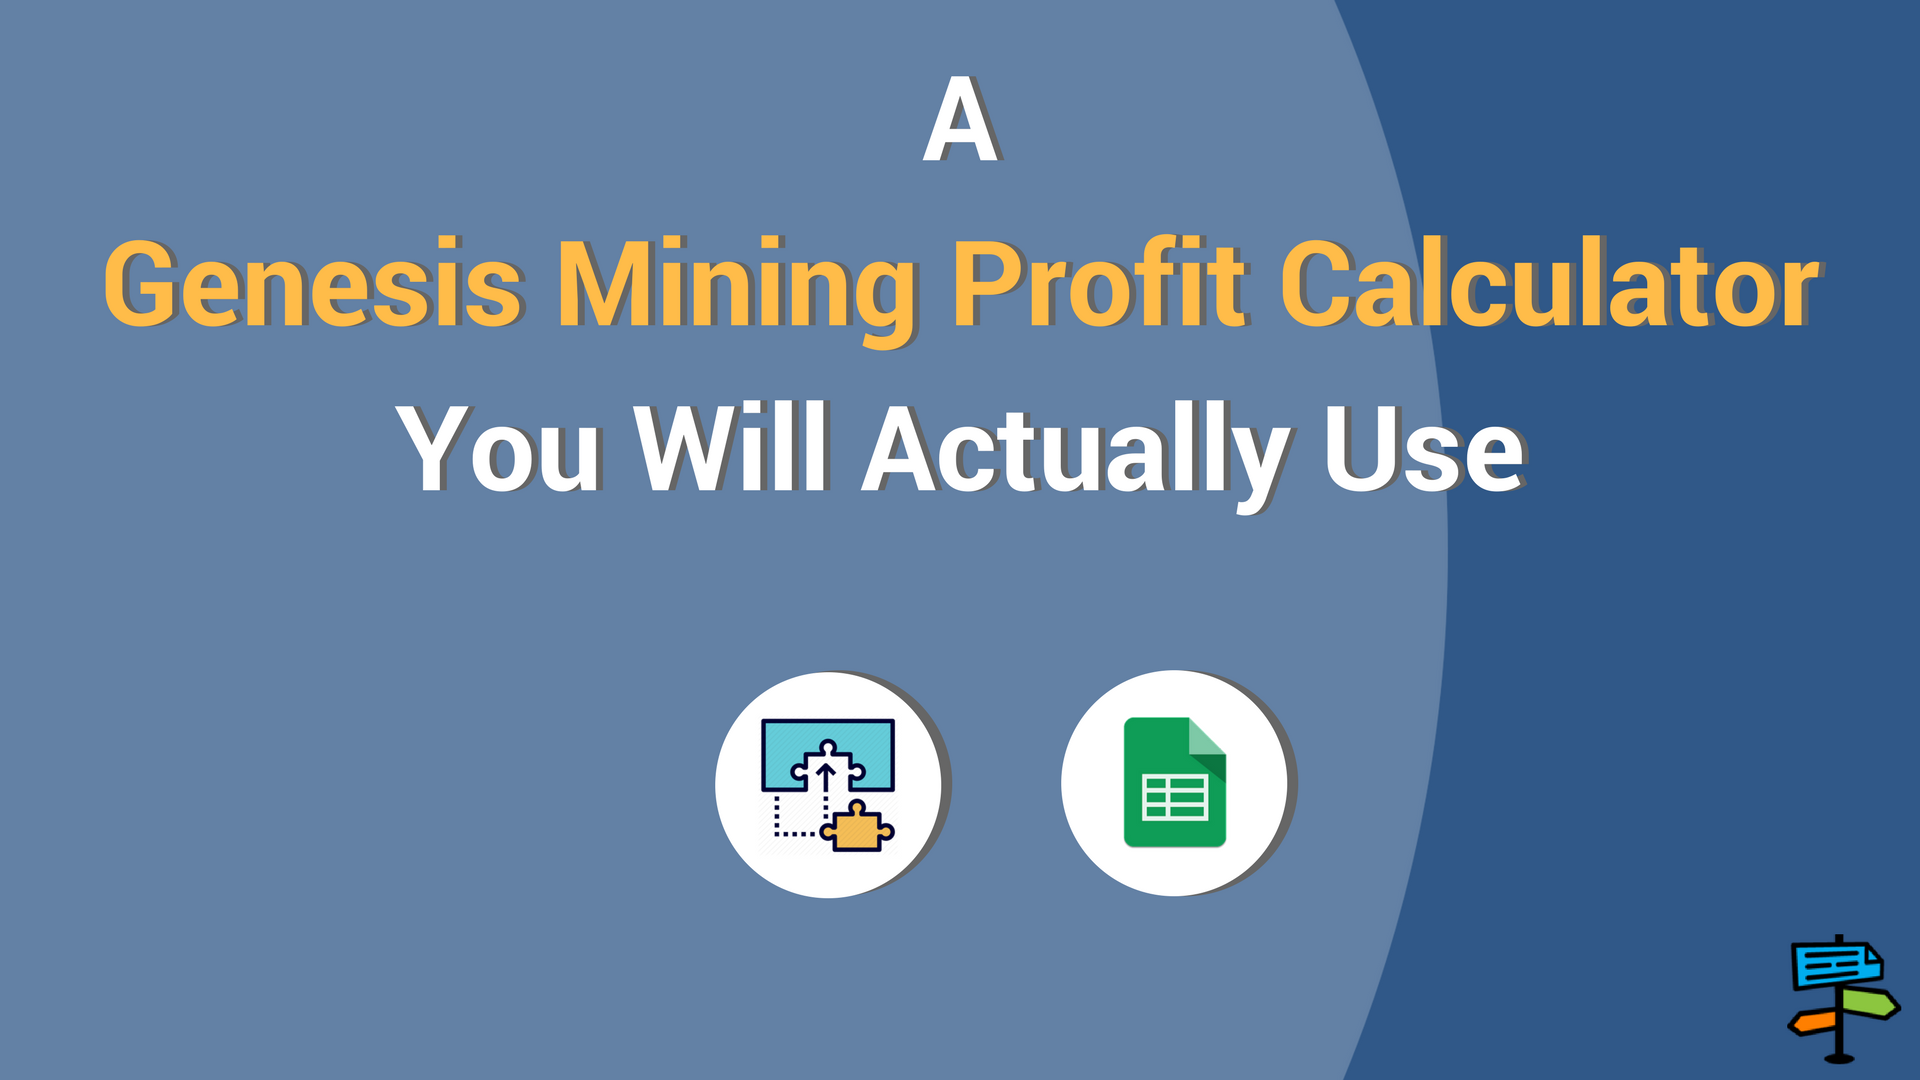 A Genesis Mining Profit Calculator You Will Actually Use